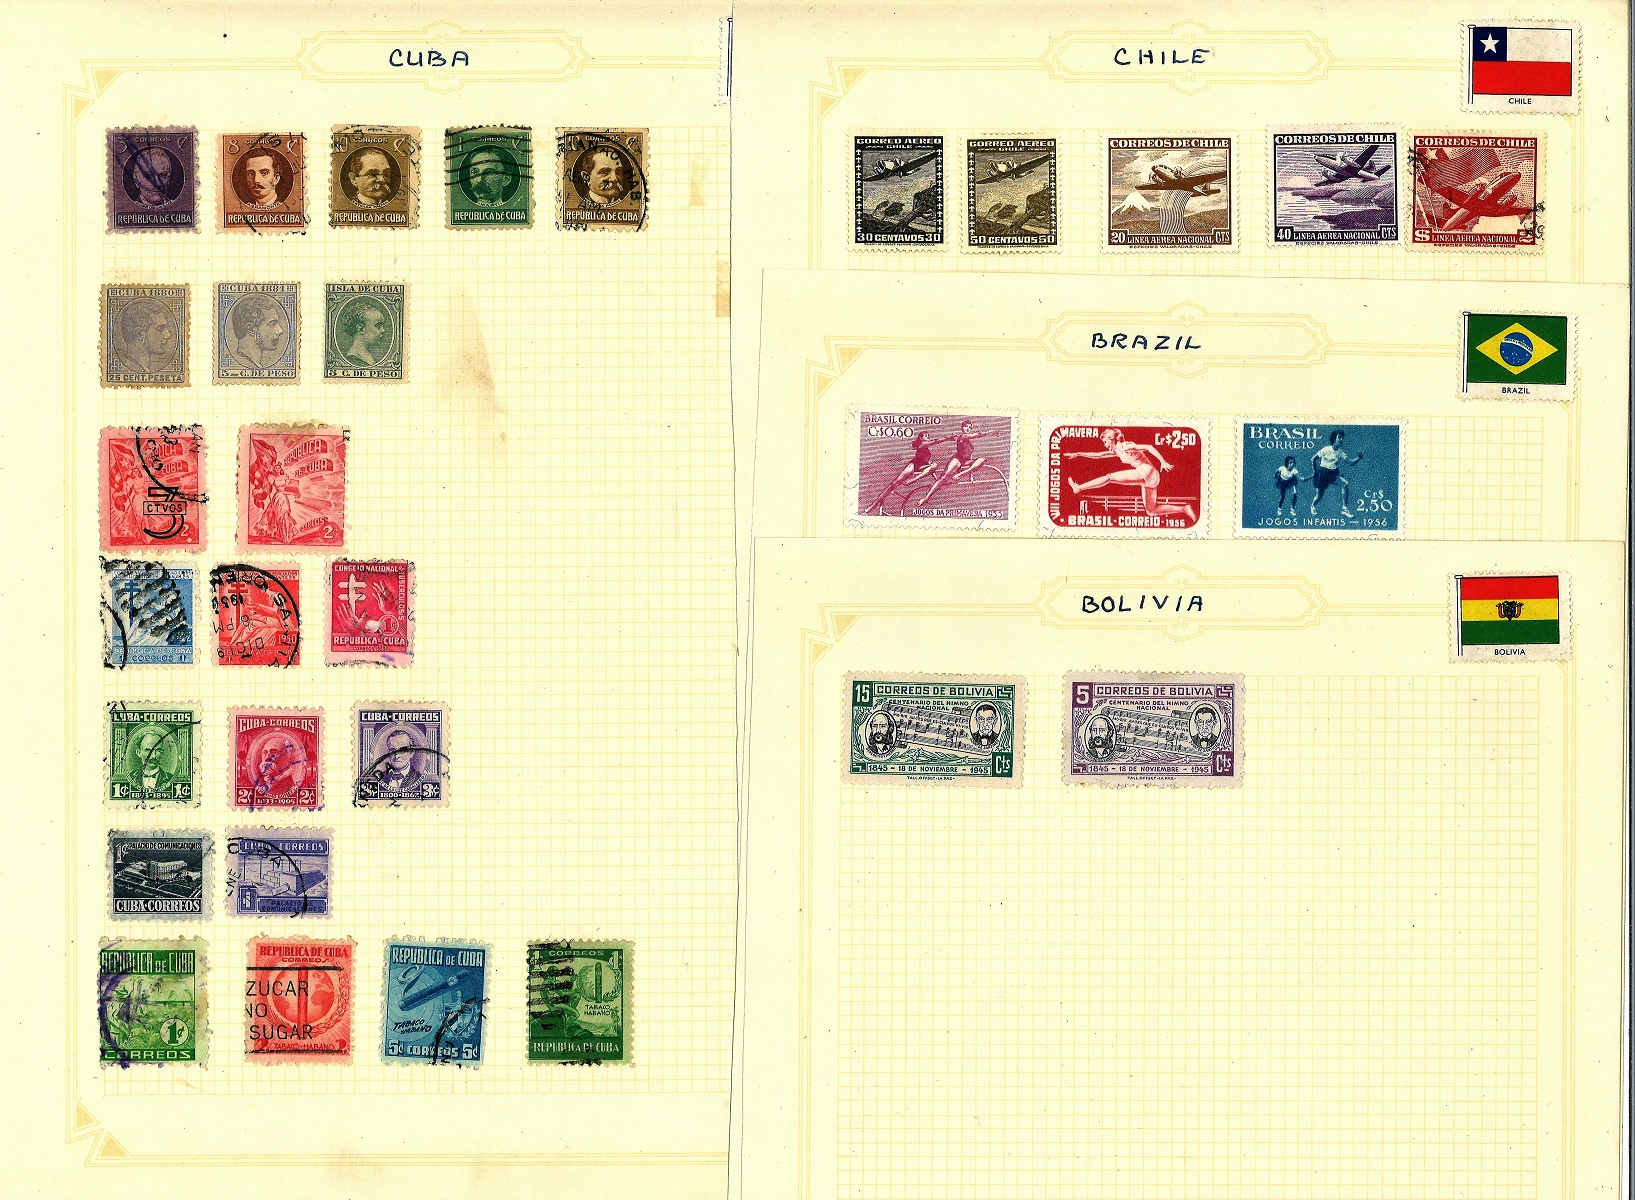 South America stamp collection 17 loose album pages countries include Argentina, Brazil, Colombia,